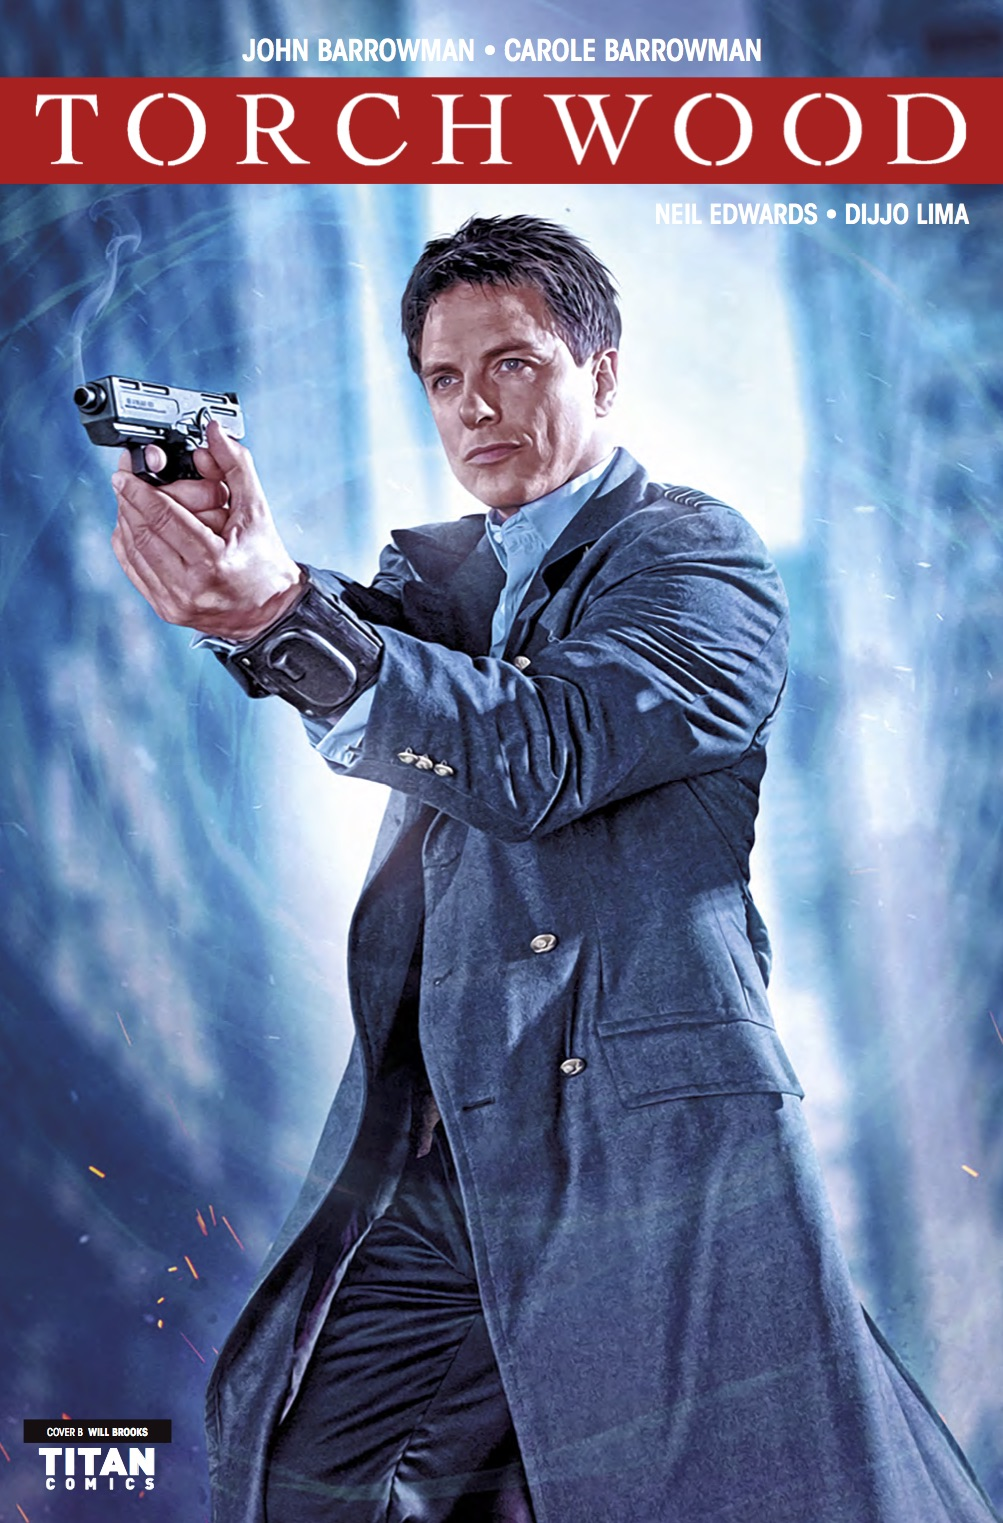 Torchwood #3 - Cover B (Credit: Titan )